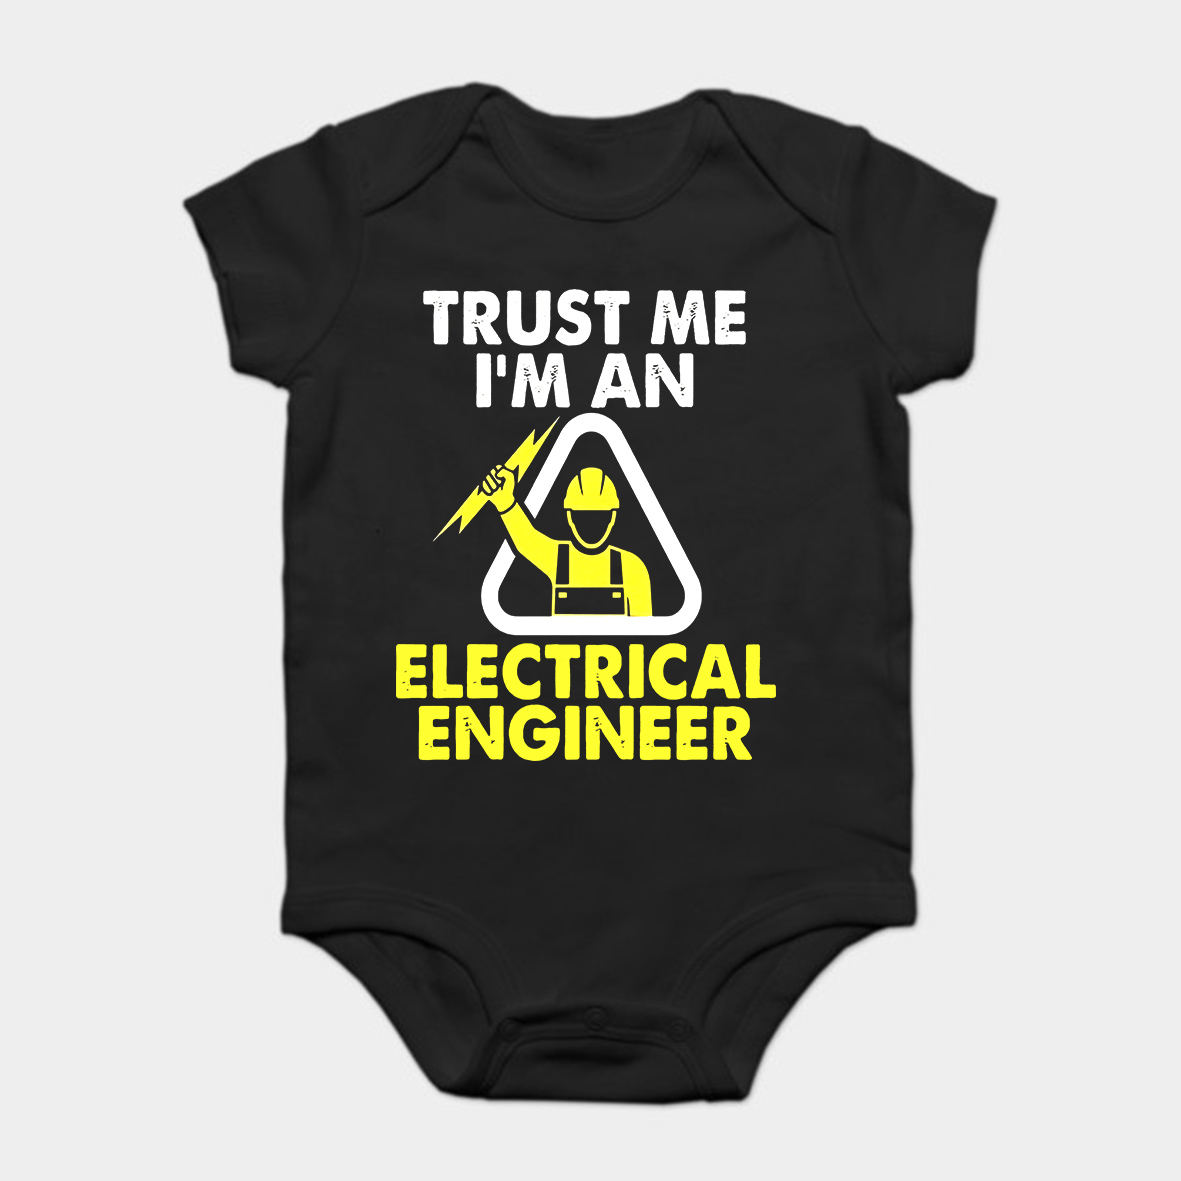 Baby Onesie Baby Bodysuits Kid T Shirt Funny Novelty Trust Me I'm An Electrical Engineer Shirt Electrician Tee Cool Diversified Latest Designs